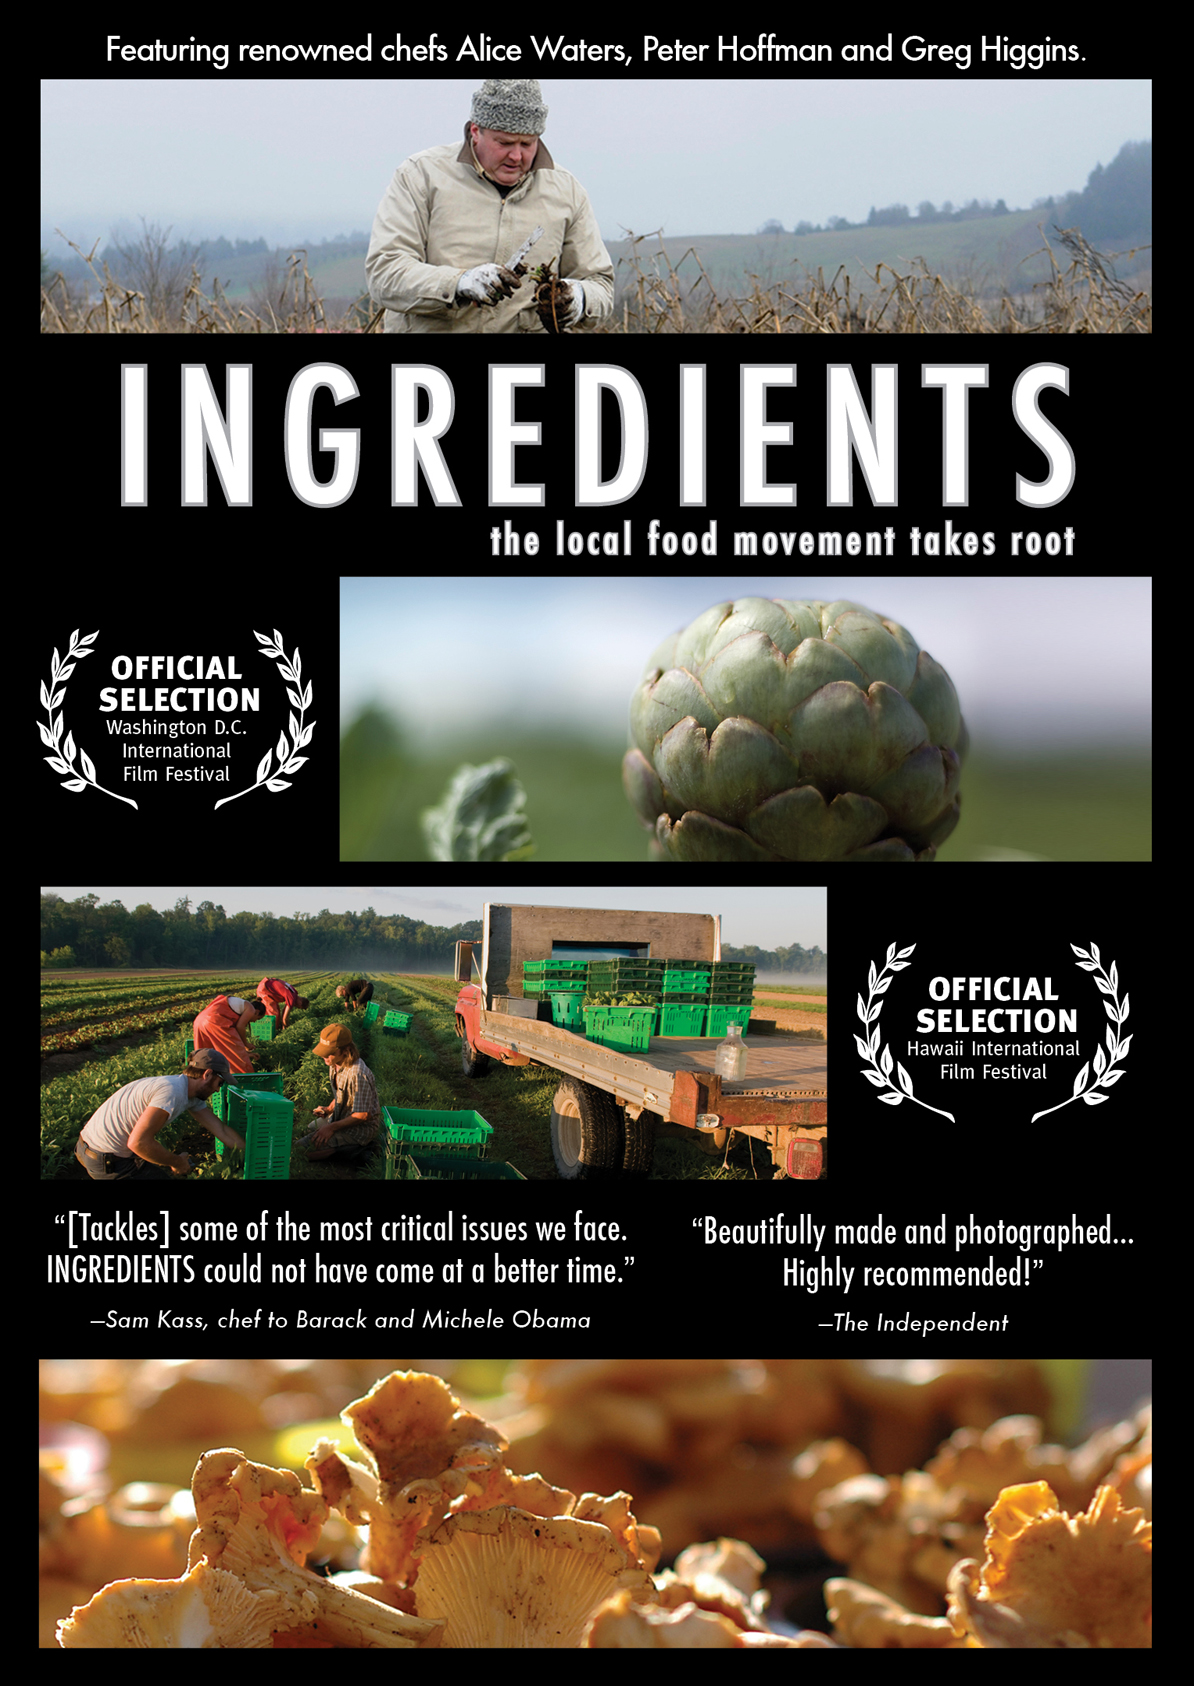 local foods movement The local food movement sure is cooking in chicagoland while we live in one of the most plentiful food generating regions, it's estimated a paltry 6% of our produce is grown in illinois green.